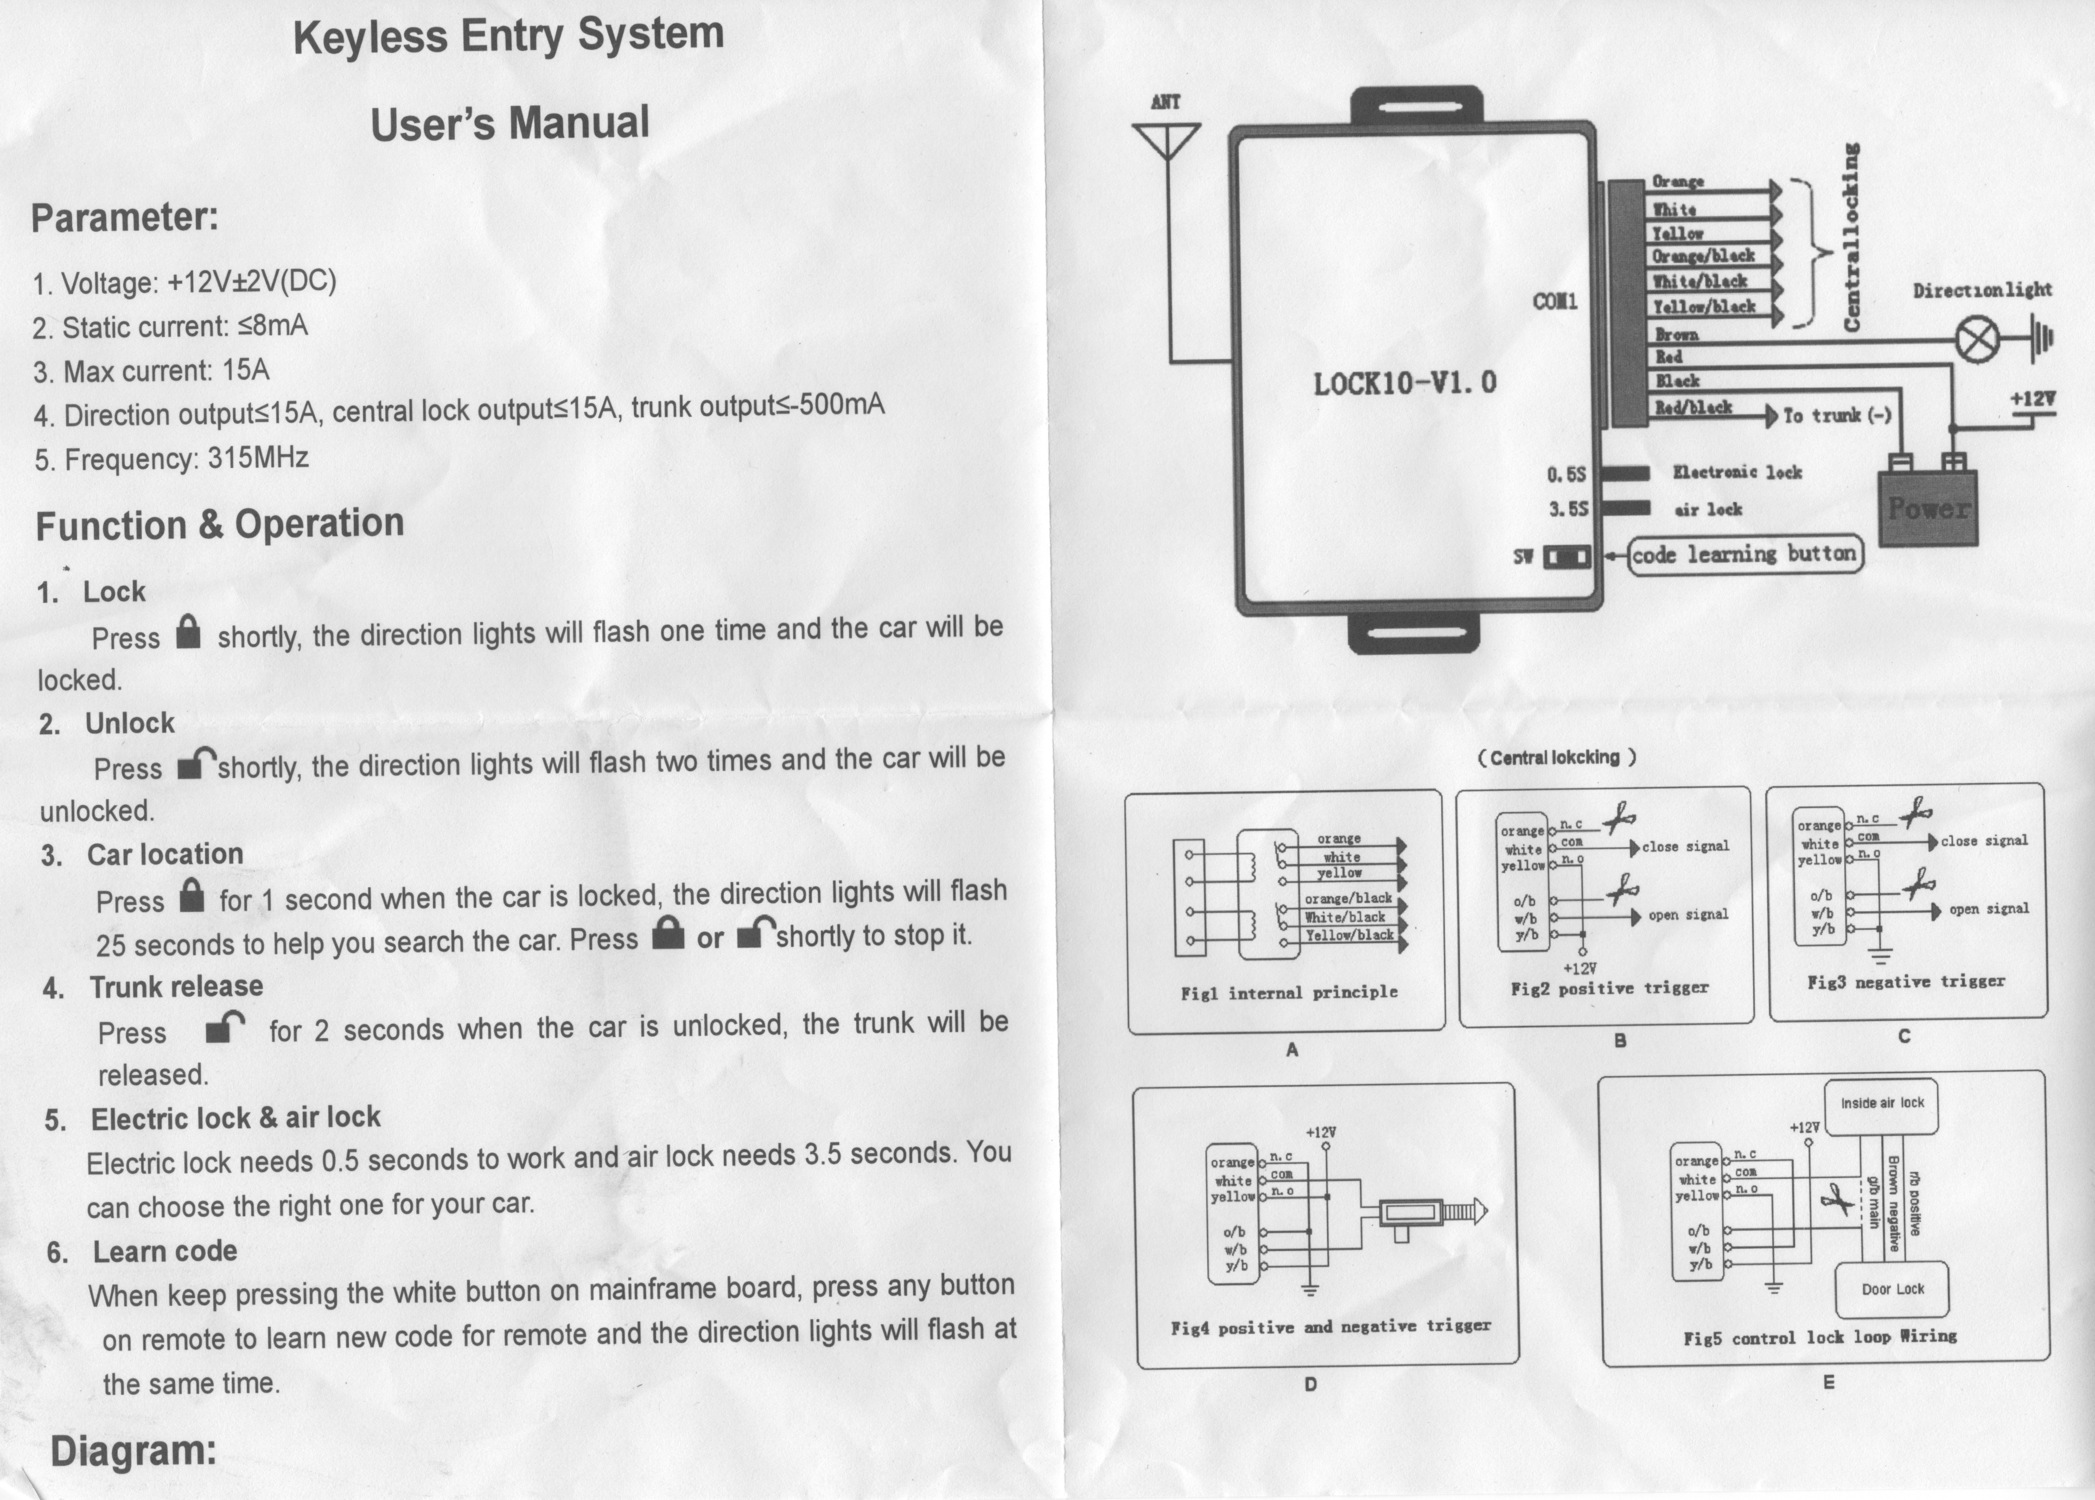 ... chinese keyless entry system user's manual with schematics.